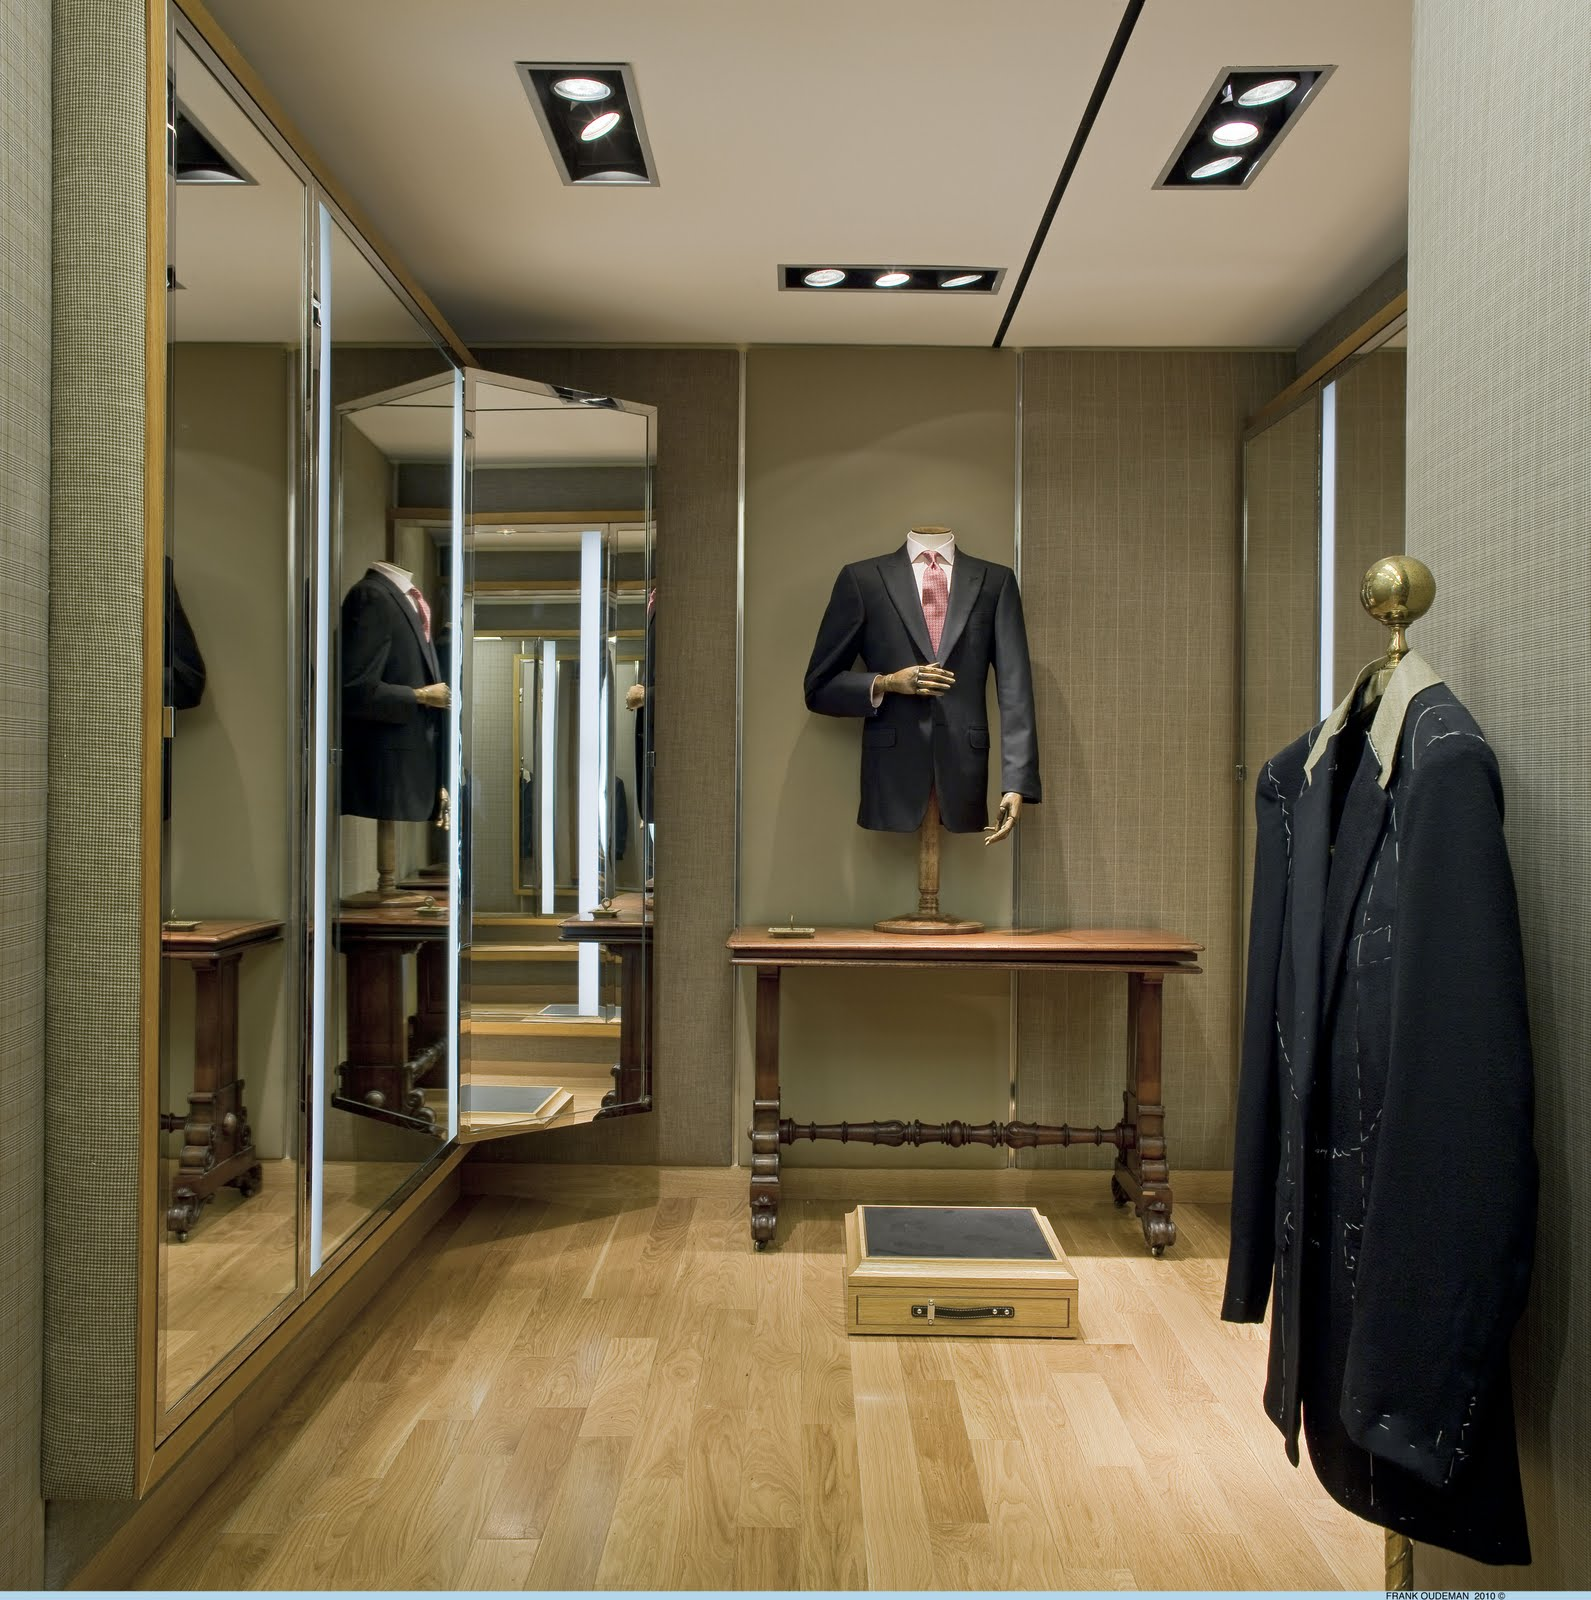 EMM (pronounced EdoubleM): Dunhill's 5th Avenue NYC Tailor ...